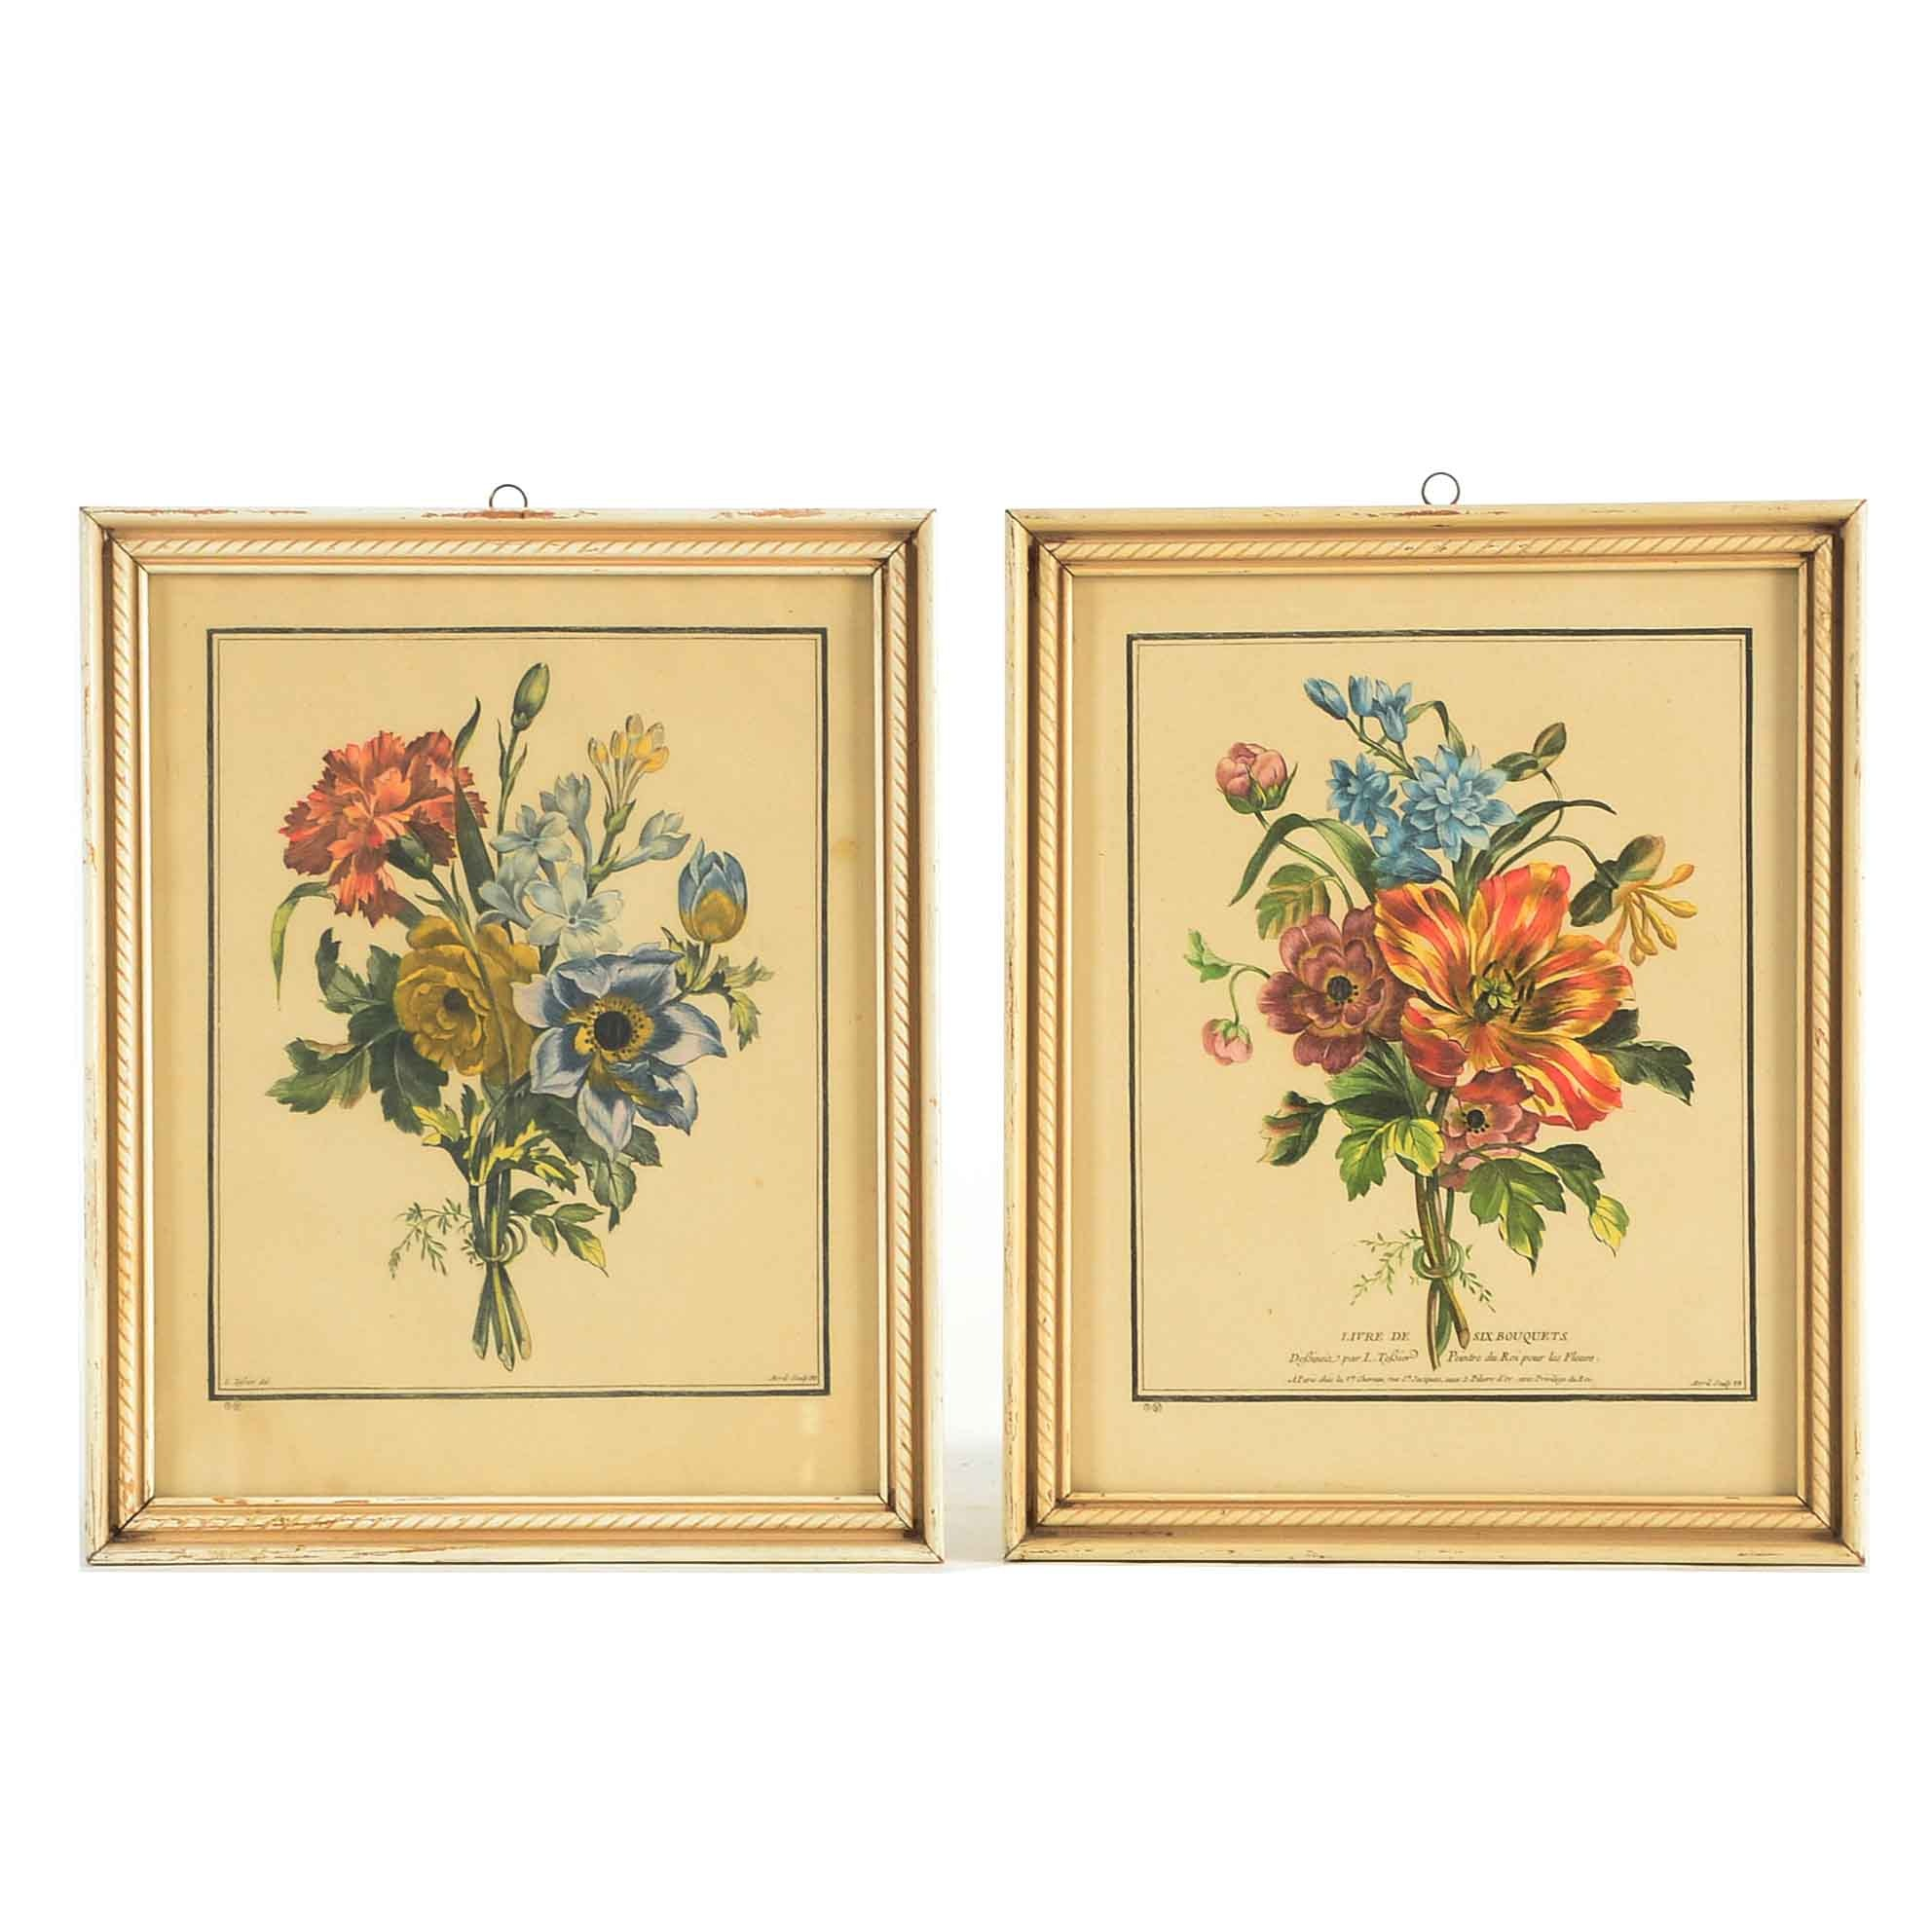 Pair of Colored Engravings of Flowers after Louis Tessier